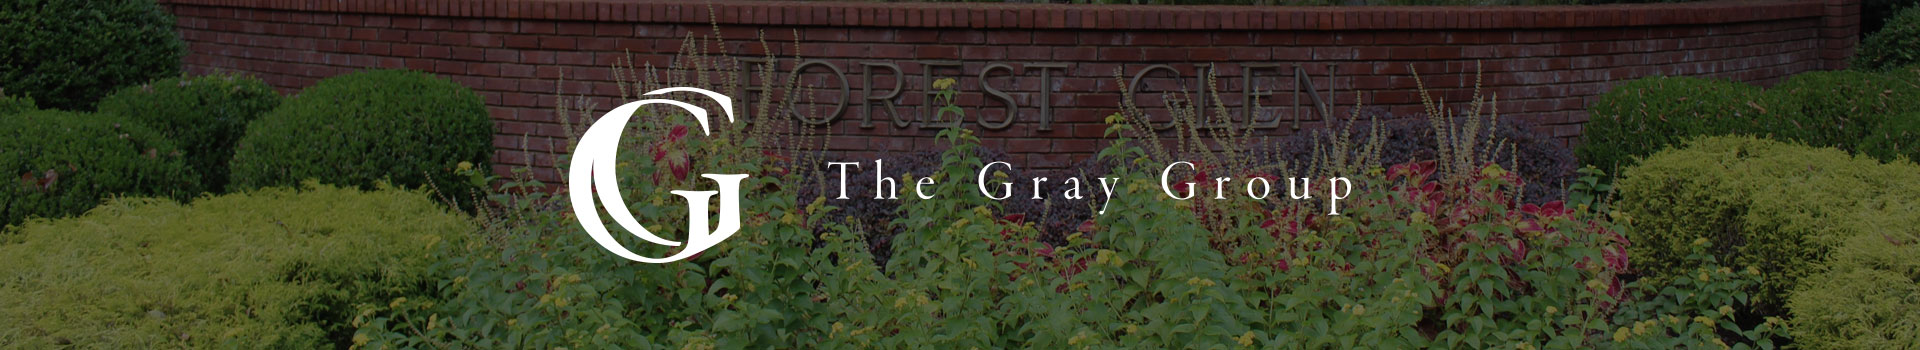 Forest Glen - The Gray Group